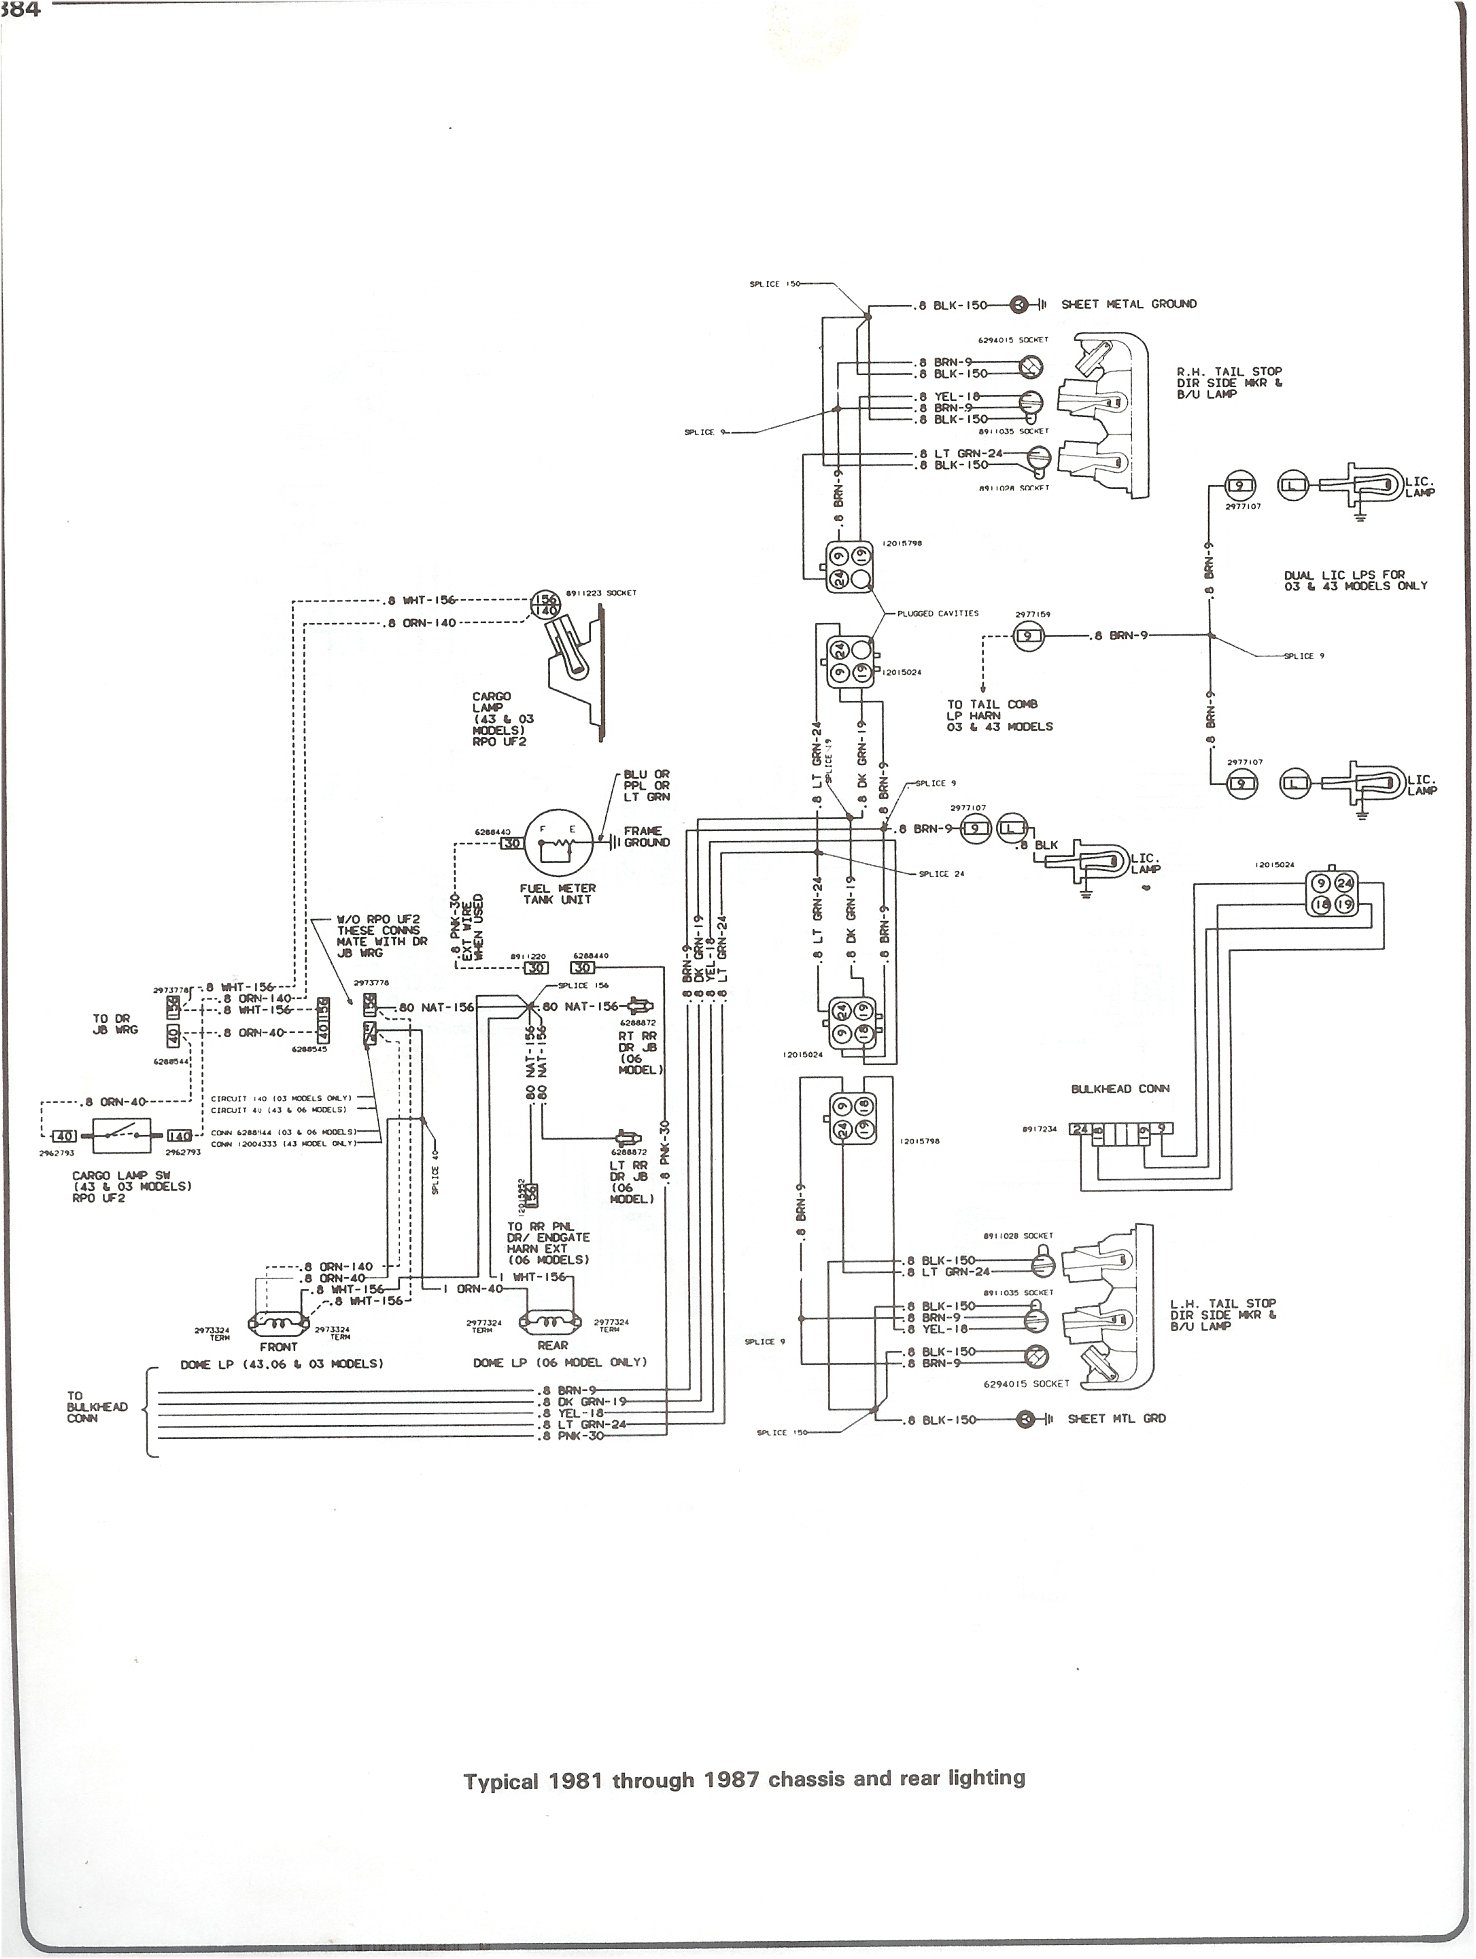 2005 Honda Civic Lx Fuse Box Diagram | Wiring Liry on